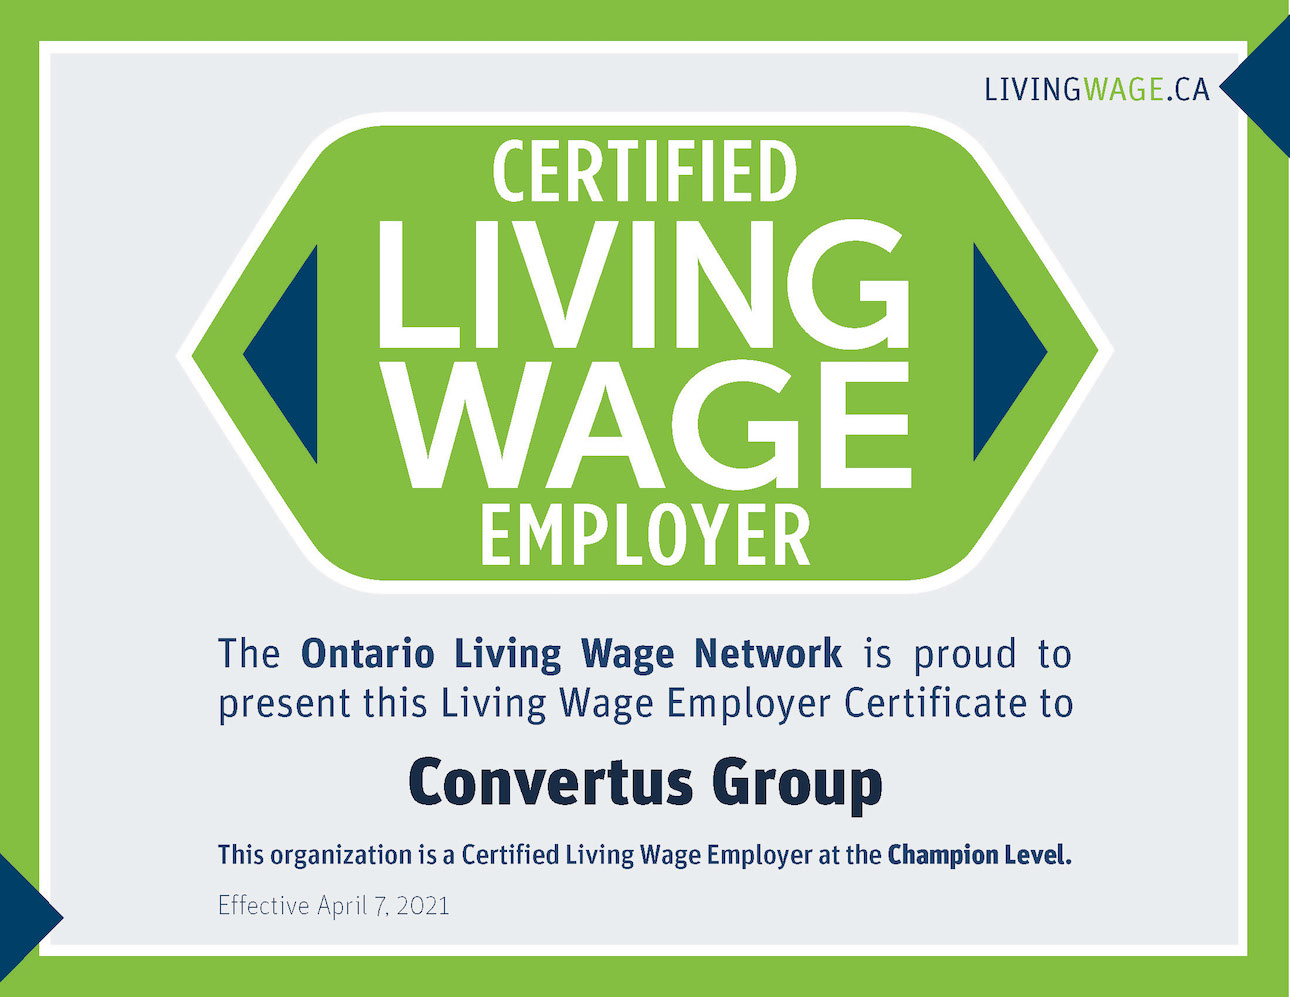 Living Wage Award Certificate for Convertus Group